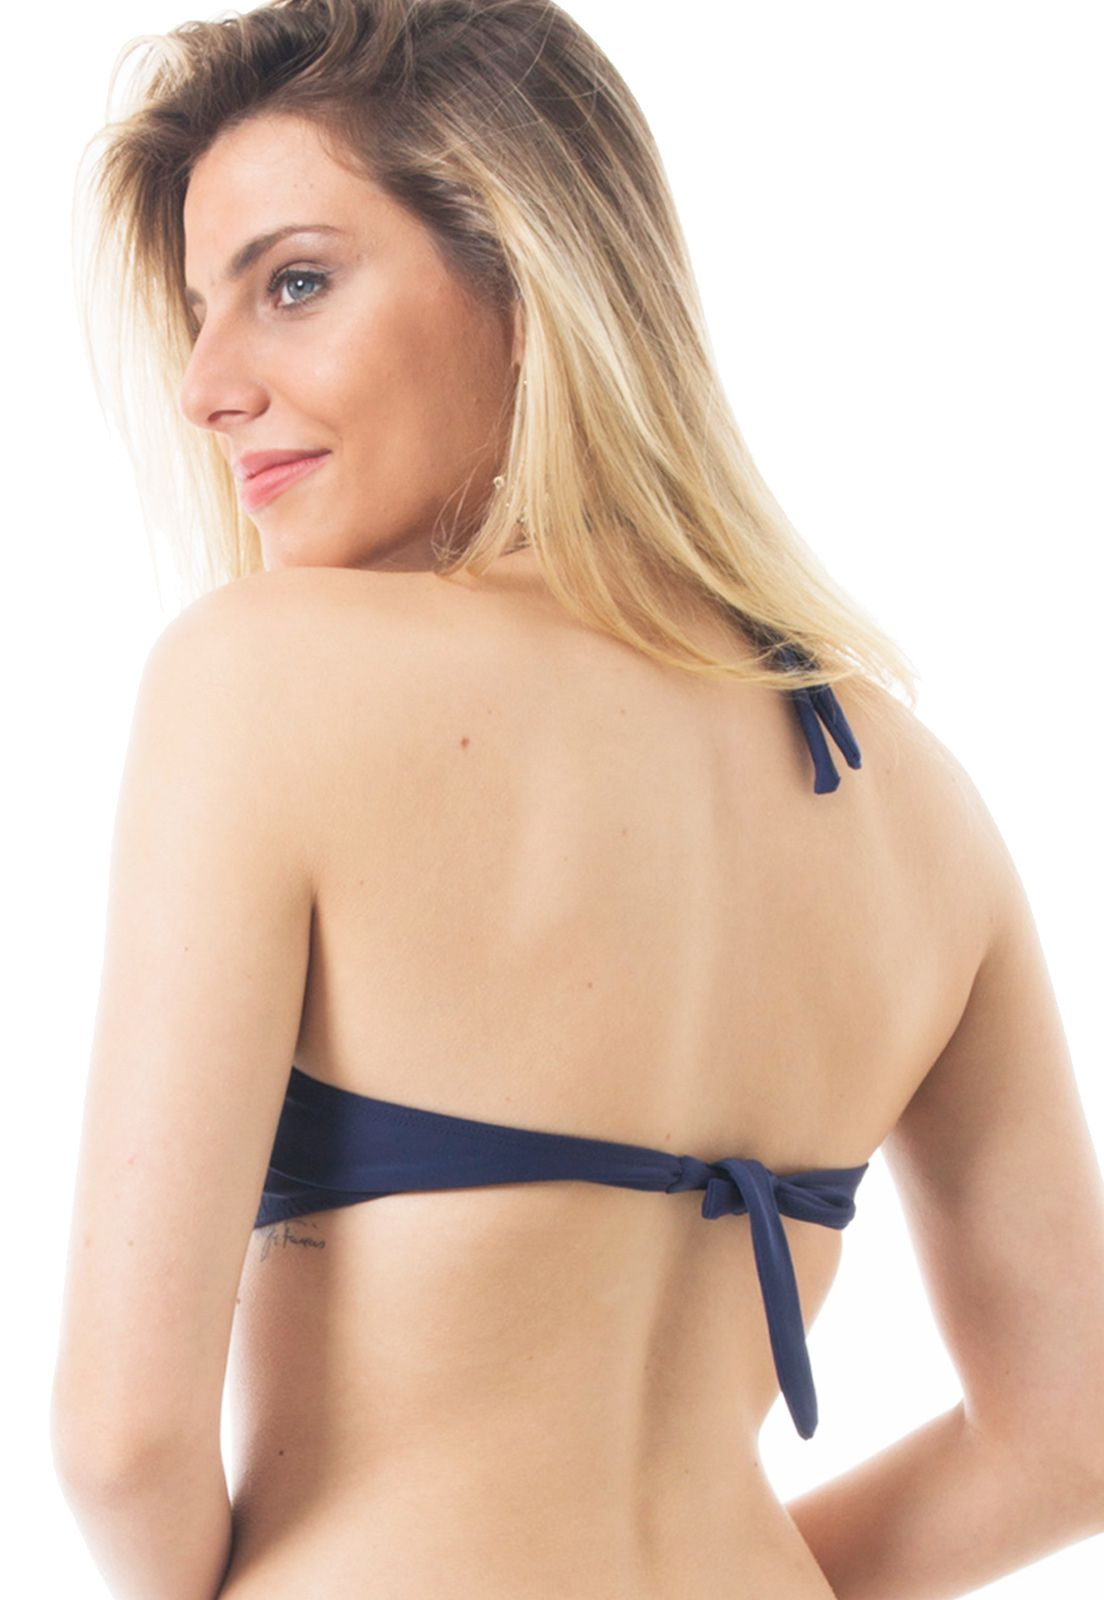 Biquíni Top Push-up Flavia Donadio Beachwear Navagio-1 Azul Marinho